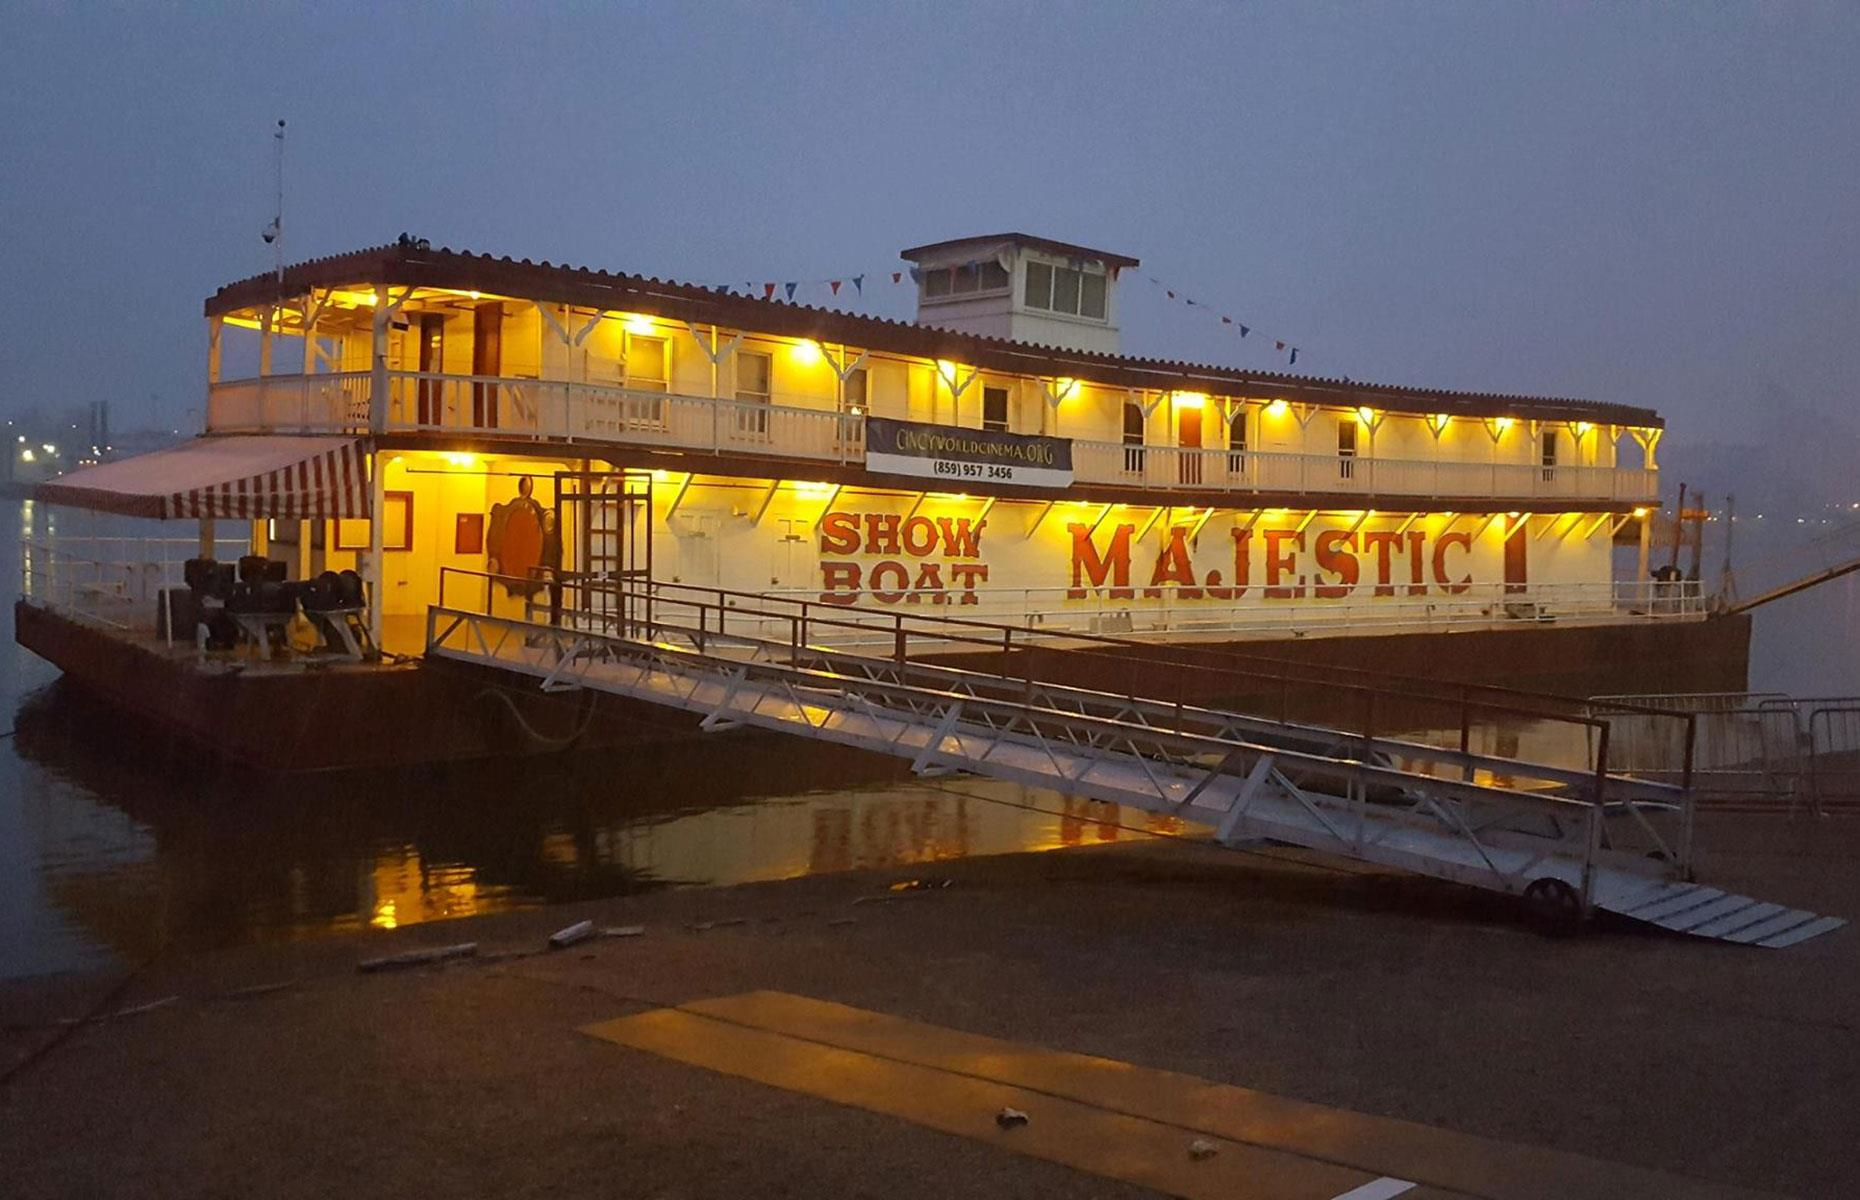 Slide 25 of 31: The Majestic may be now be moored outside of Manchester, Ohiobut she has anchored herself in US history. Constructed in 1923, the Majestic was one of the last floating theater venues ever built in the US and she kept the show afloat for an impressive 90 years. However, the show might go on thanks to a renovation projectfrom the new owners.